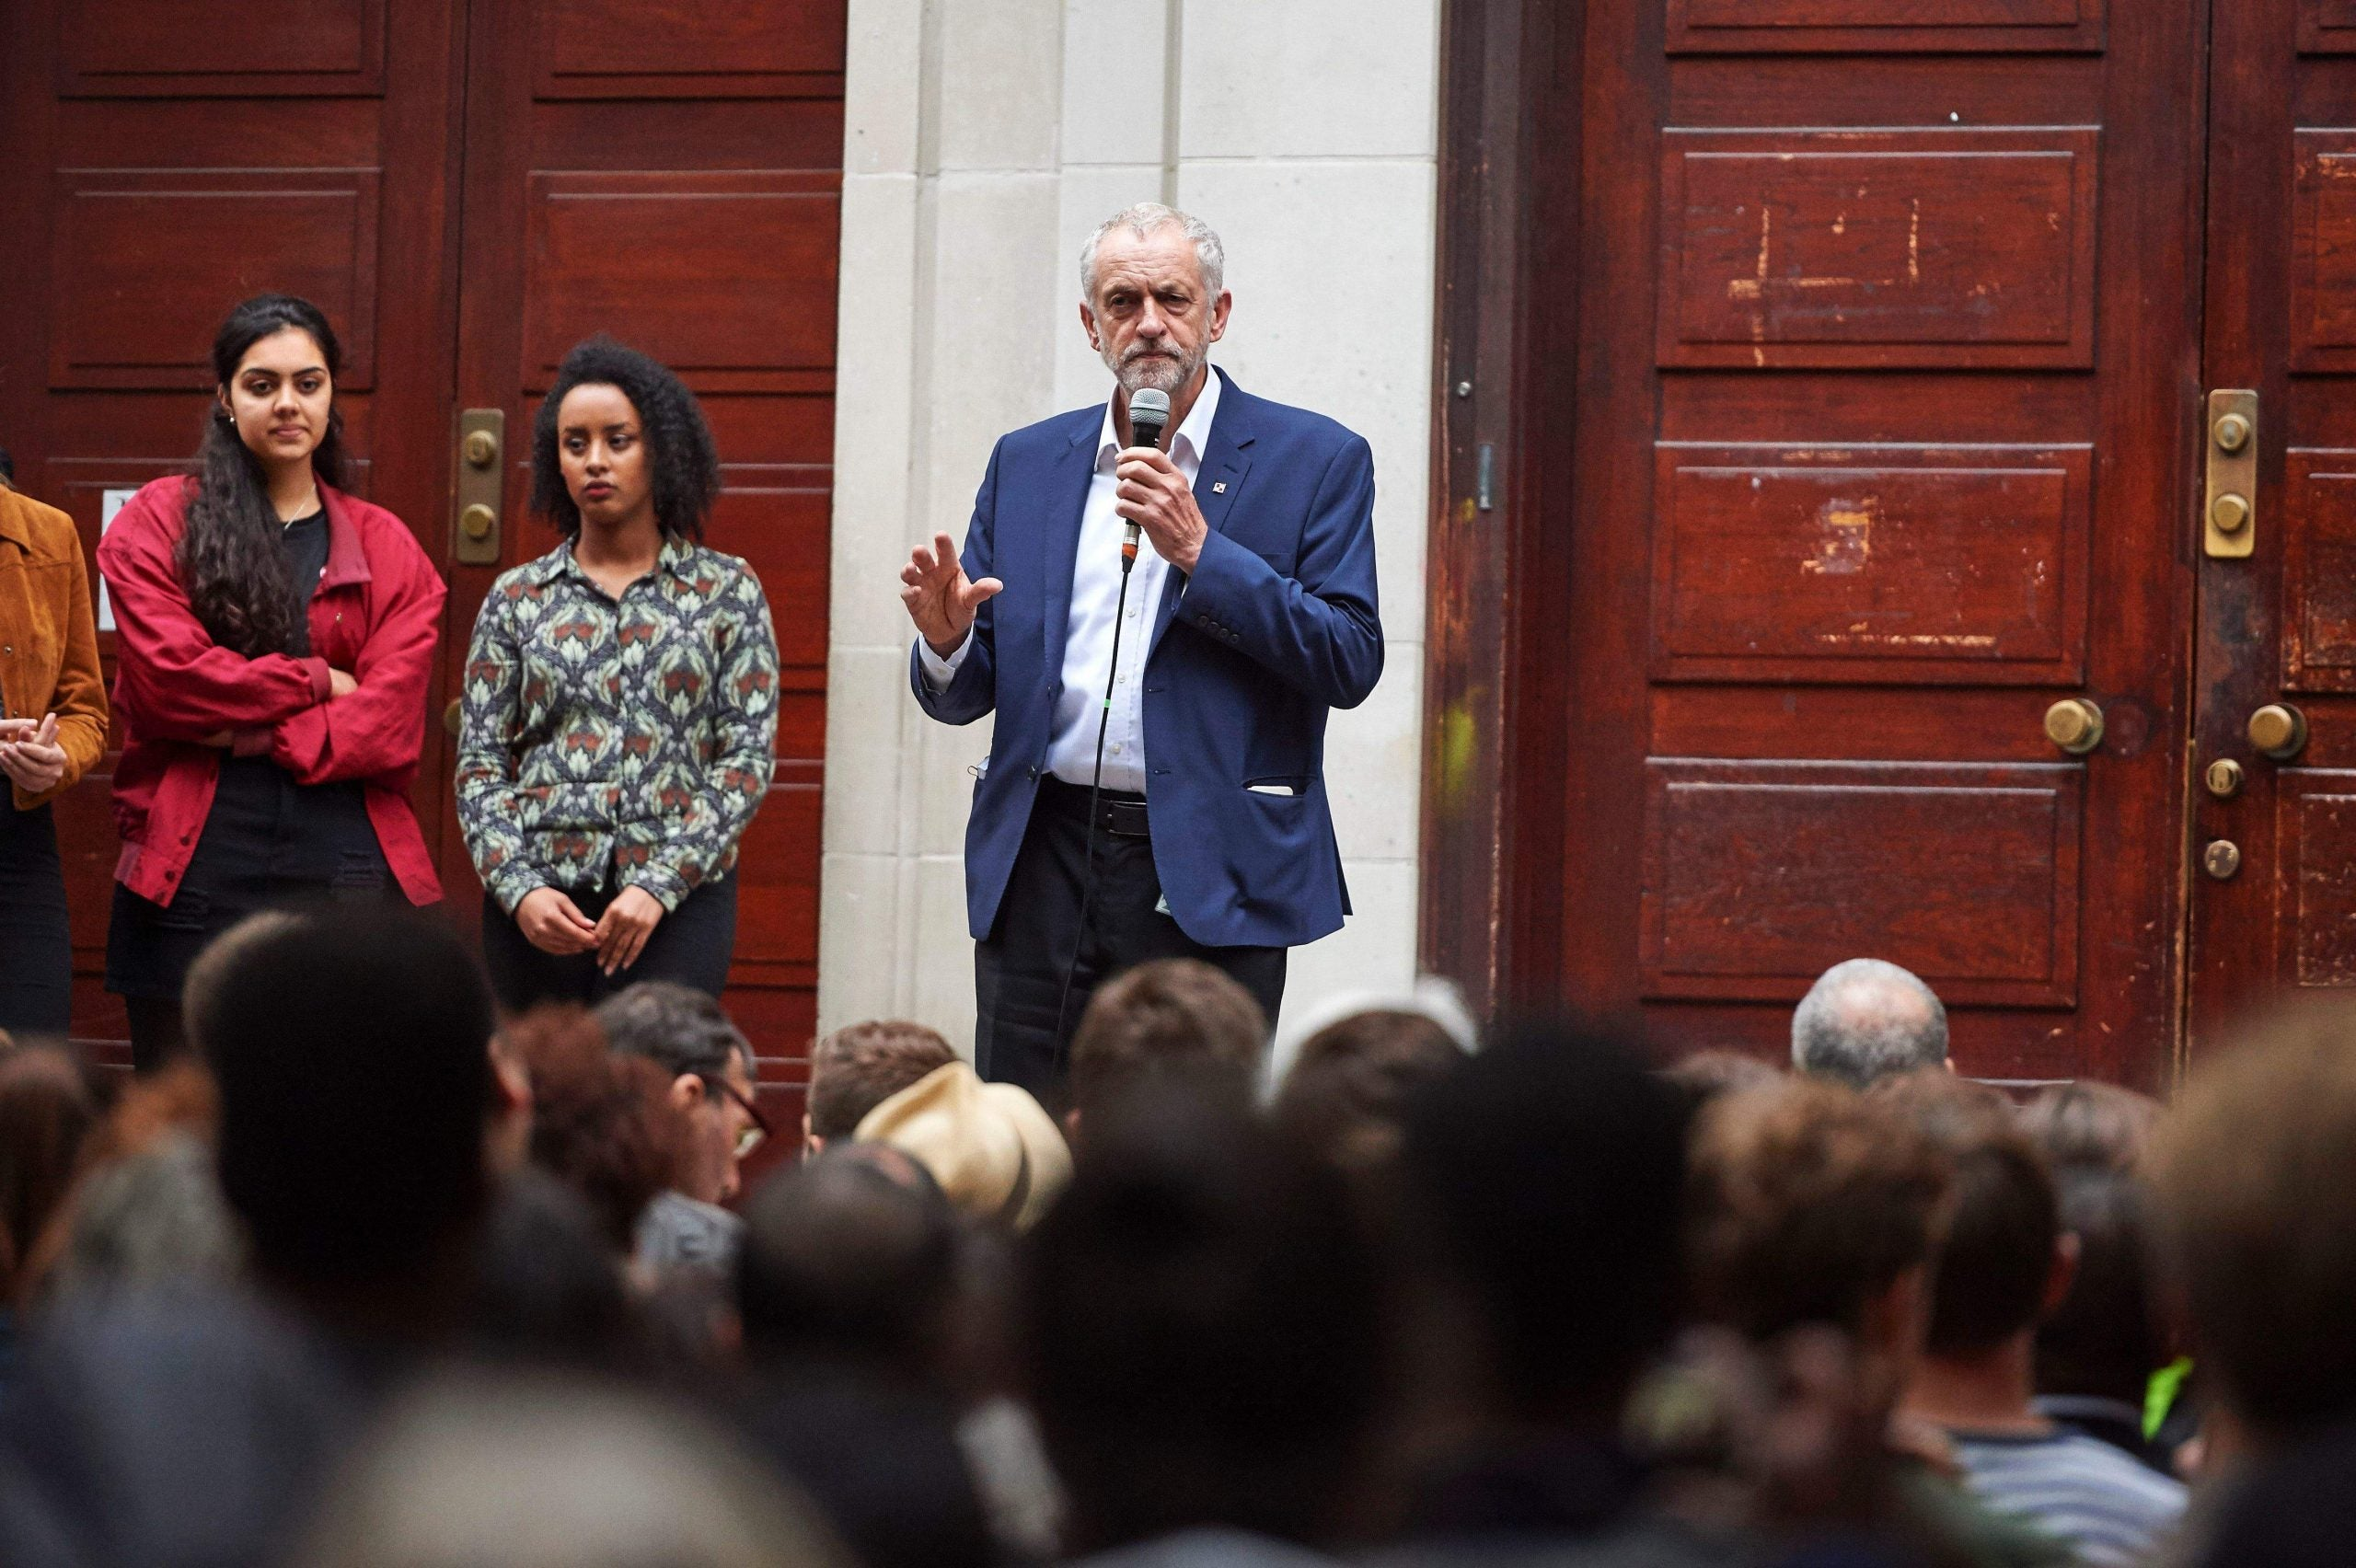 Jeremy Corbyn's allies believe they'll win again because their opponents haven't learned from defeat